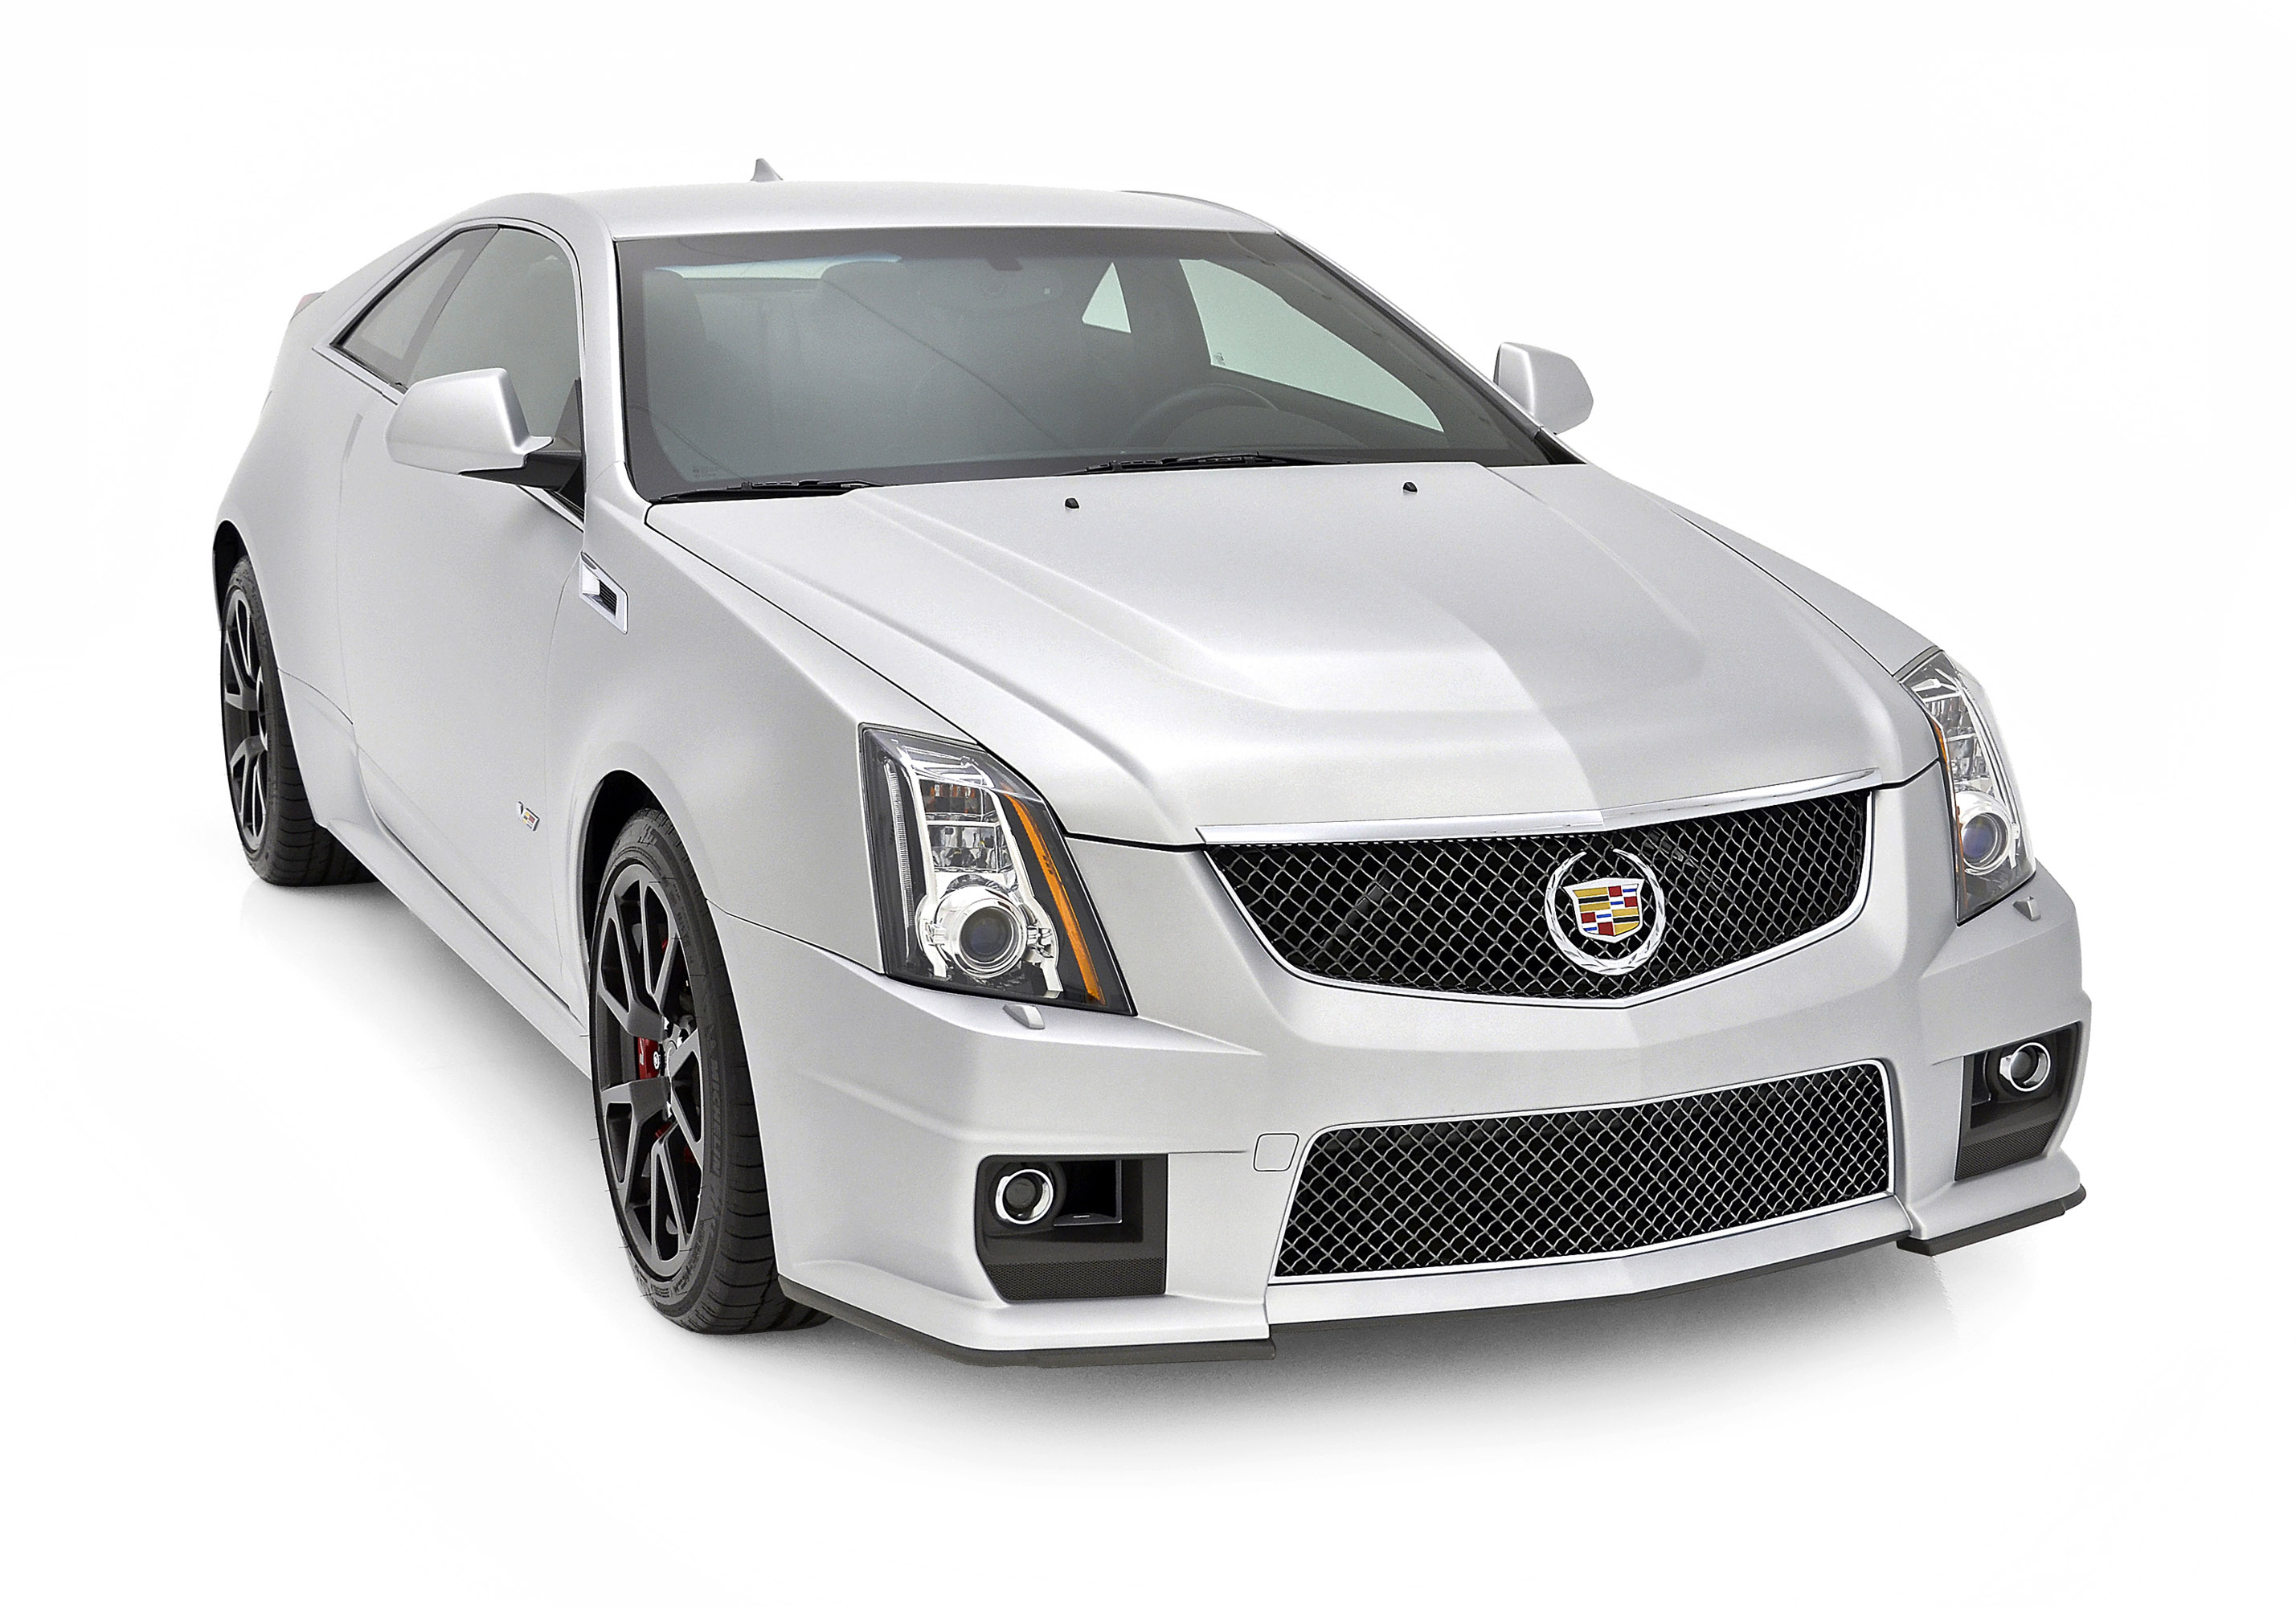 Cadillac Adds Two New Limited Edition Models To The CTS Range